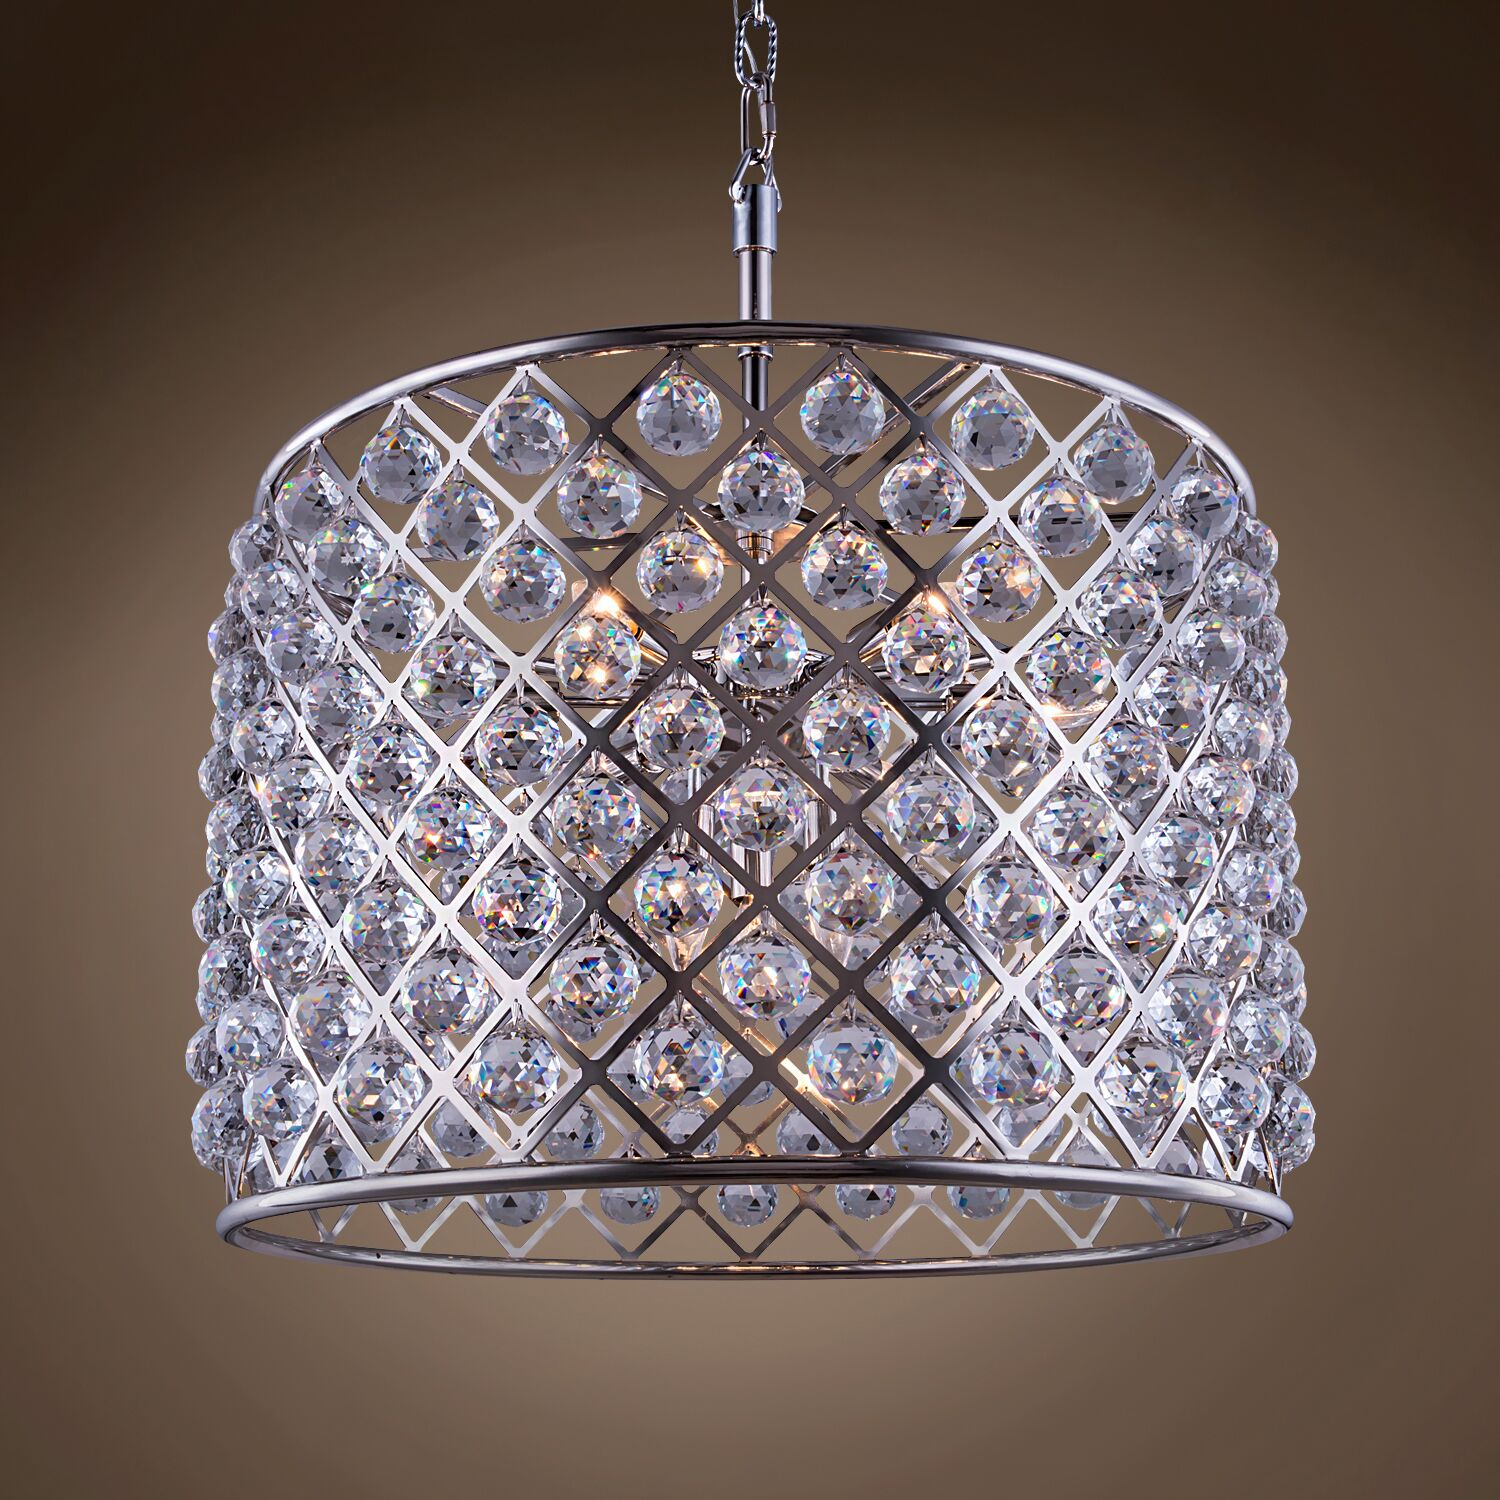 Lulsgate 8-Light Chandelier Bulb Type: Incandescent, Finish: Polished Nickel, Shade Color: Smoke